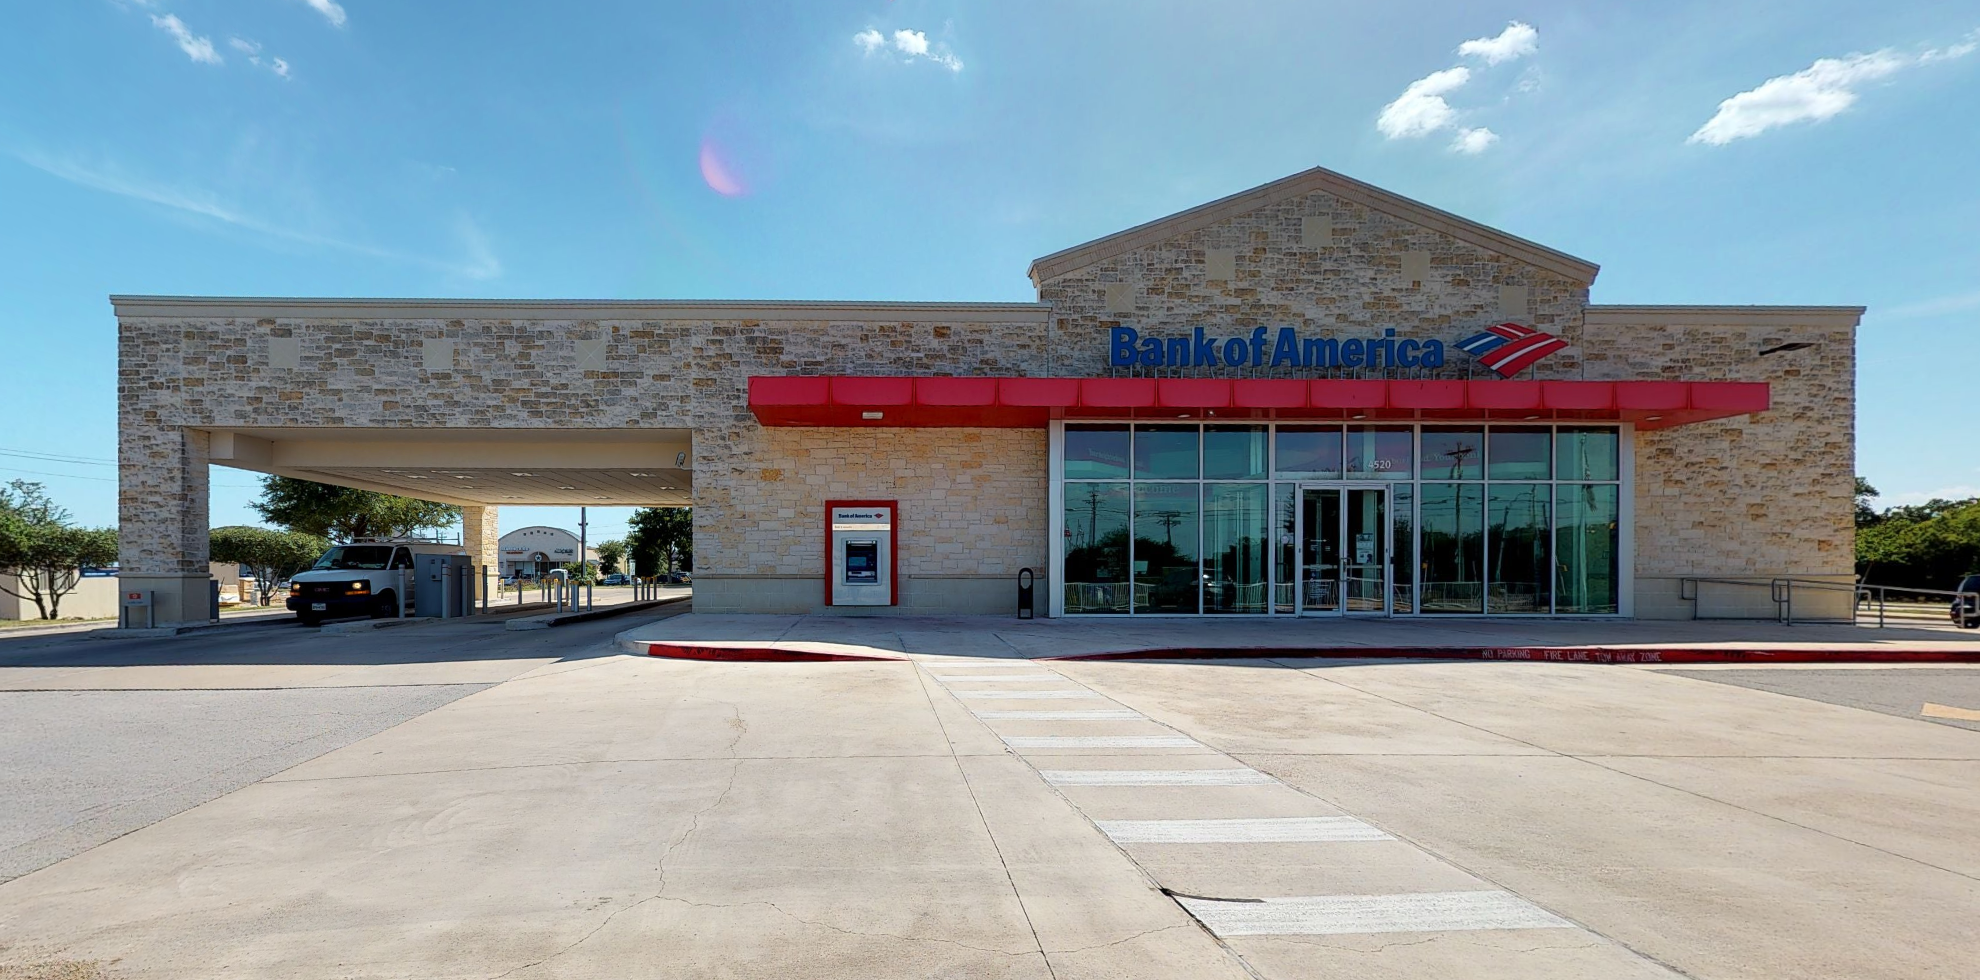 Bank of America financial center with drive-thru ATM | 4520 Williams Dr, Georgetown, TX 78633